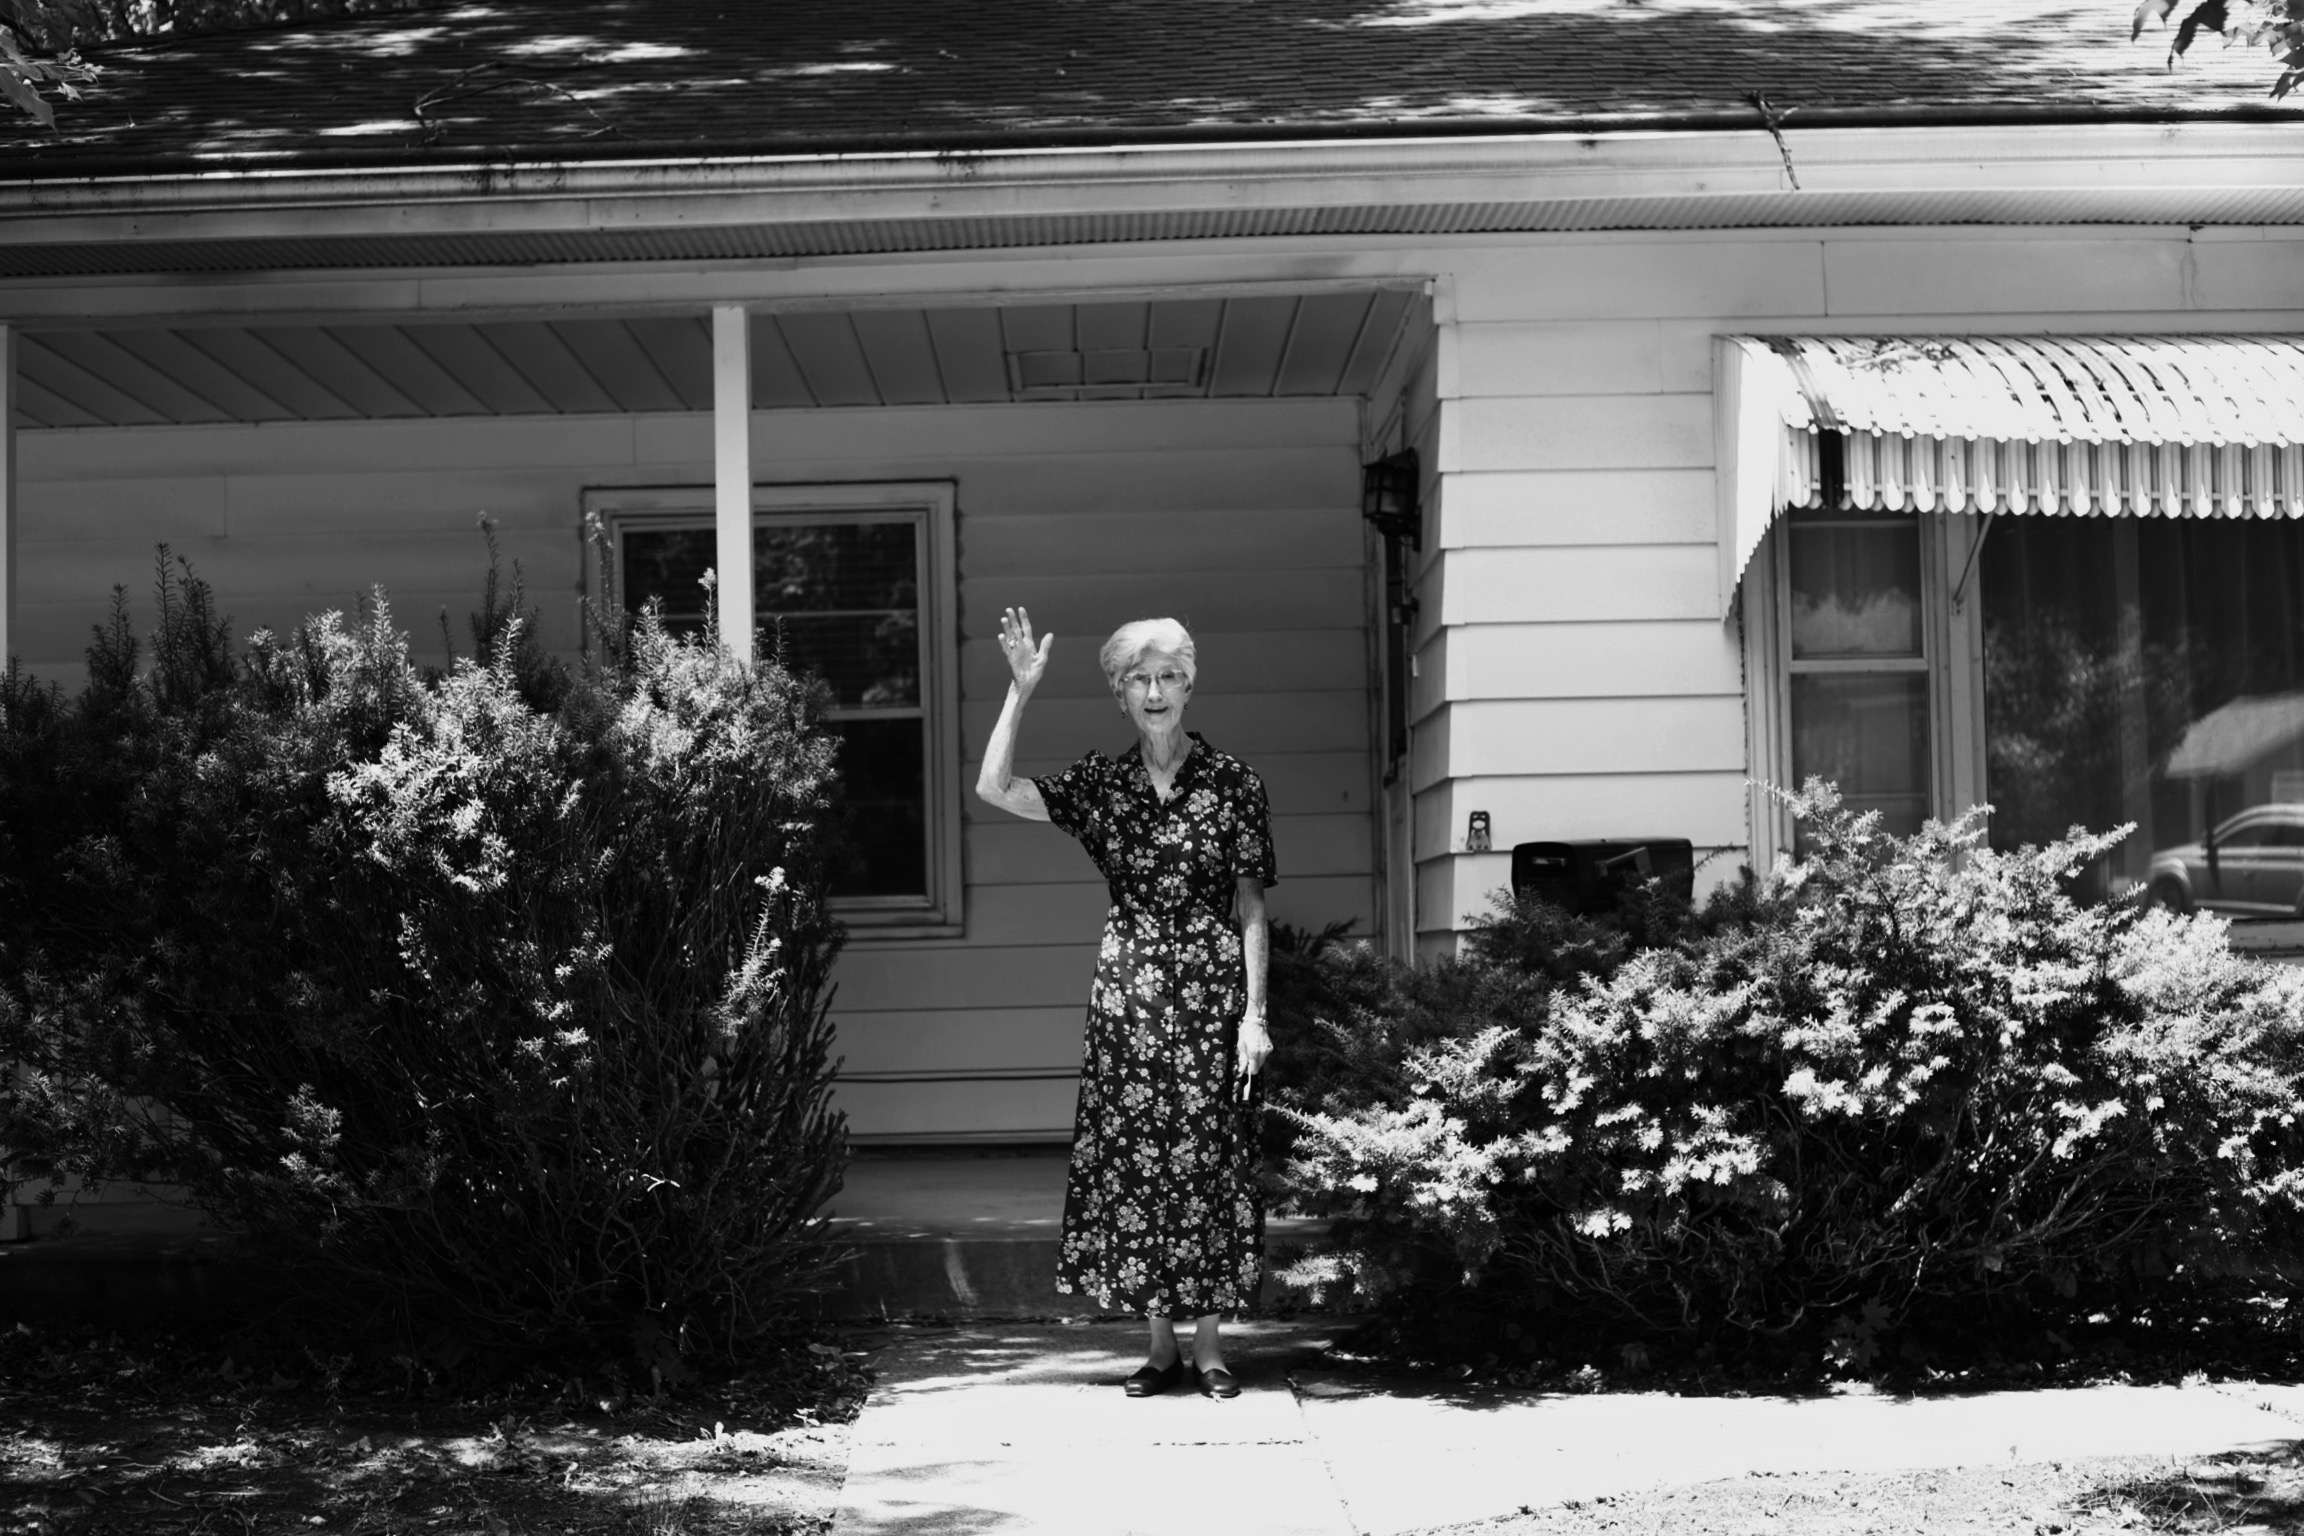 Jeanne standing in front of her house waving